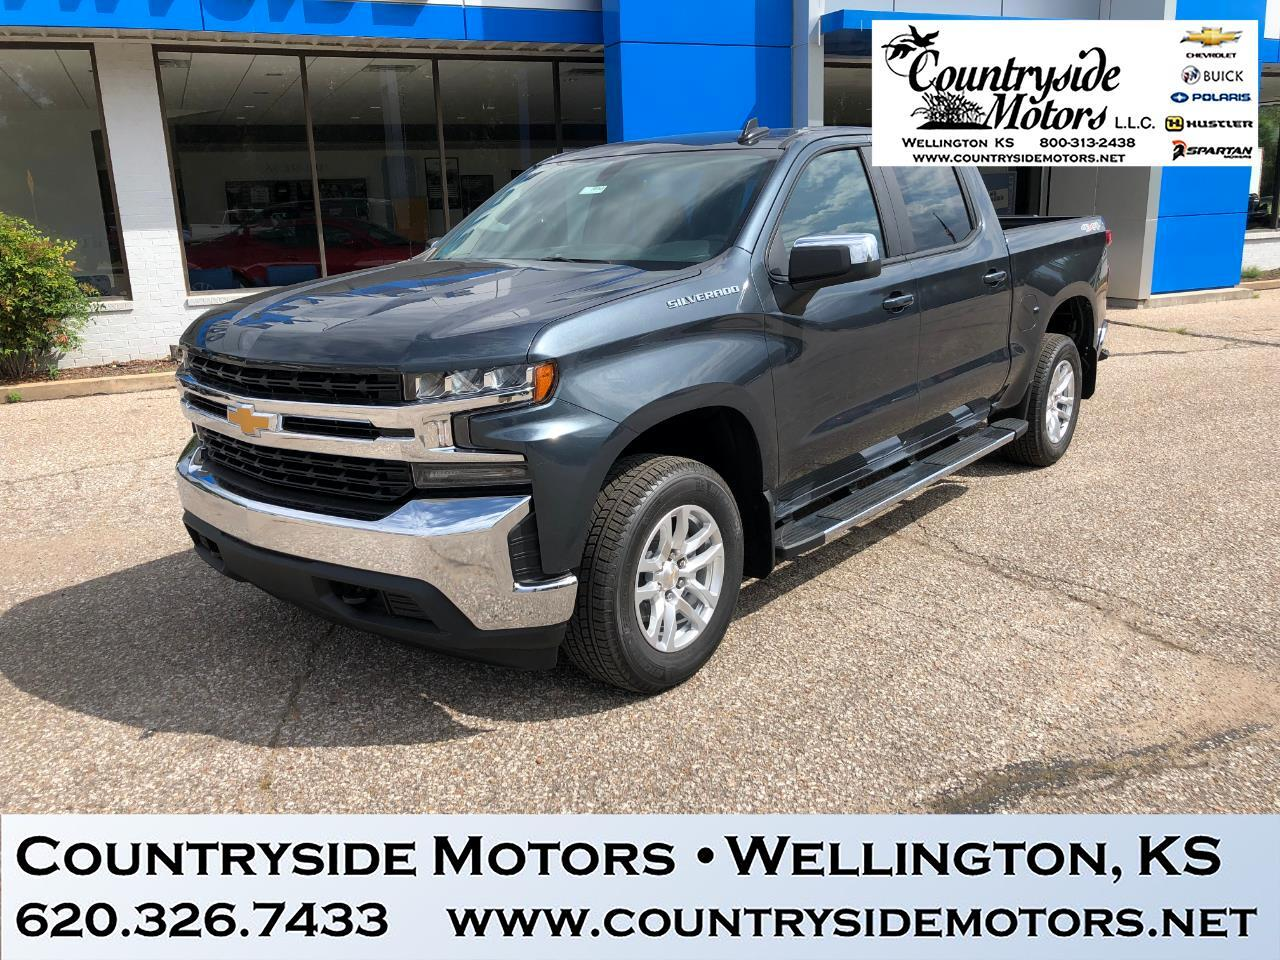 2019 Chevrolet SILVERADO 1500 LT CREW CAB 4x4 ALL STAR EDITION